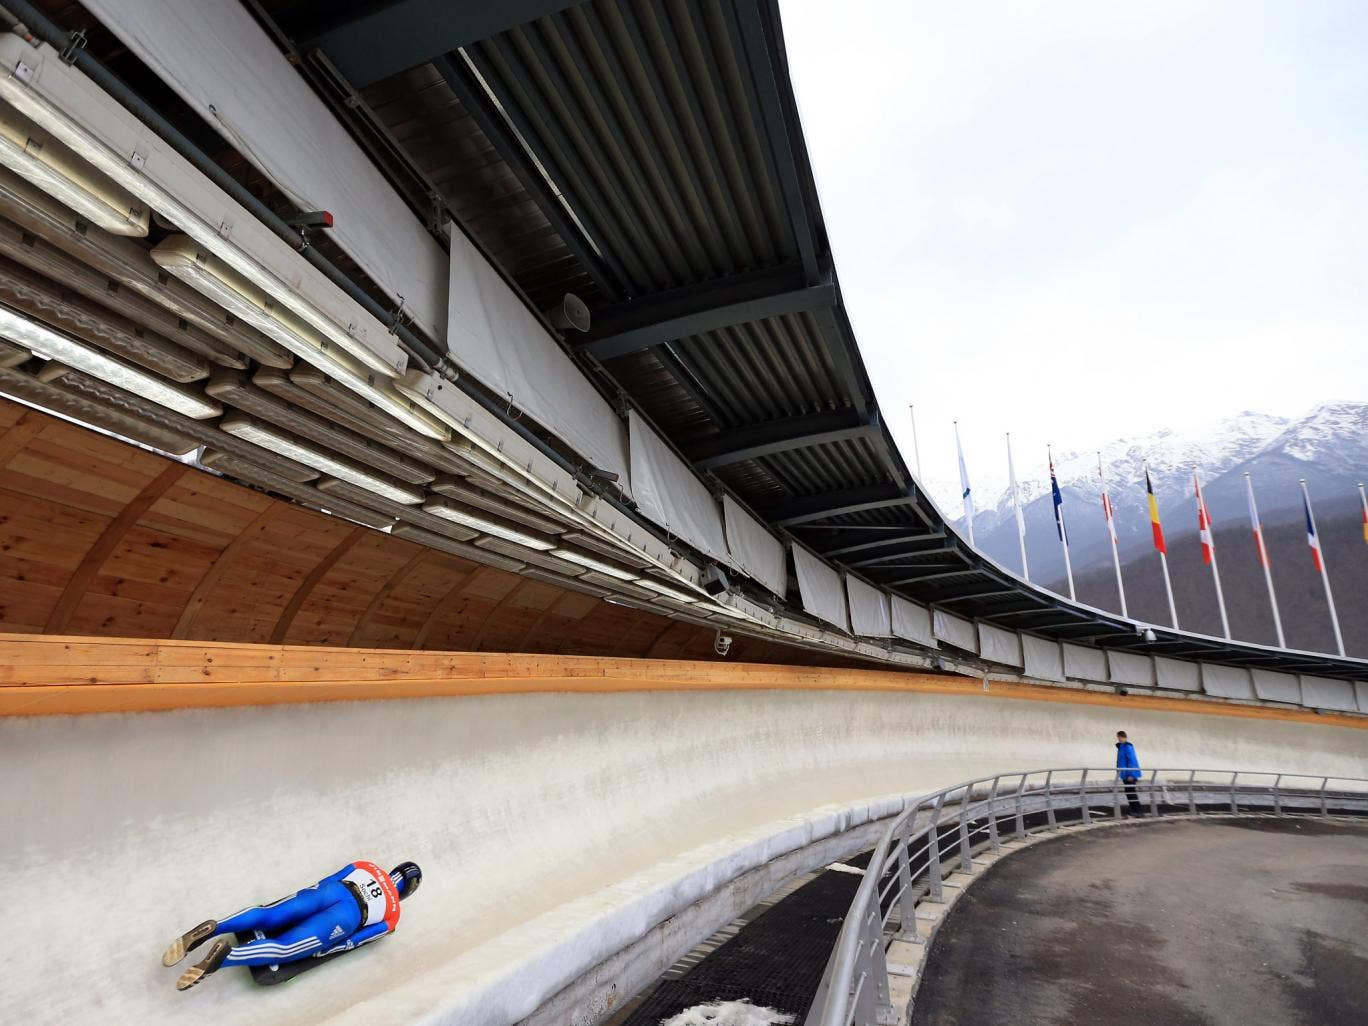 A general view of the track as a Skeleton rider goes down the slope at the Sanki Sliding Center